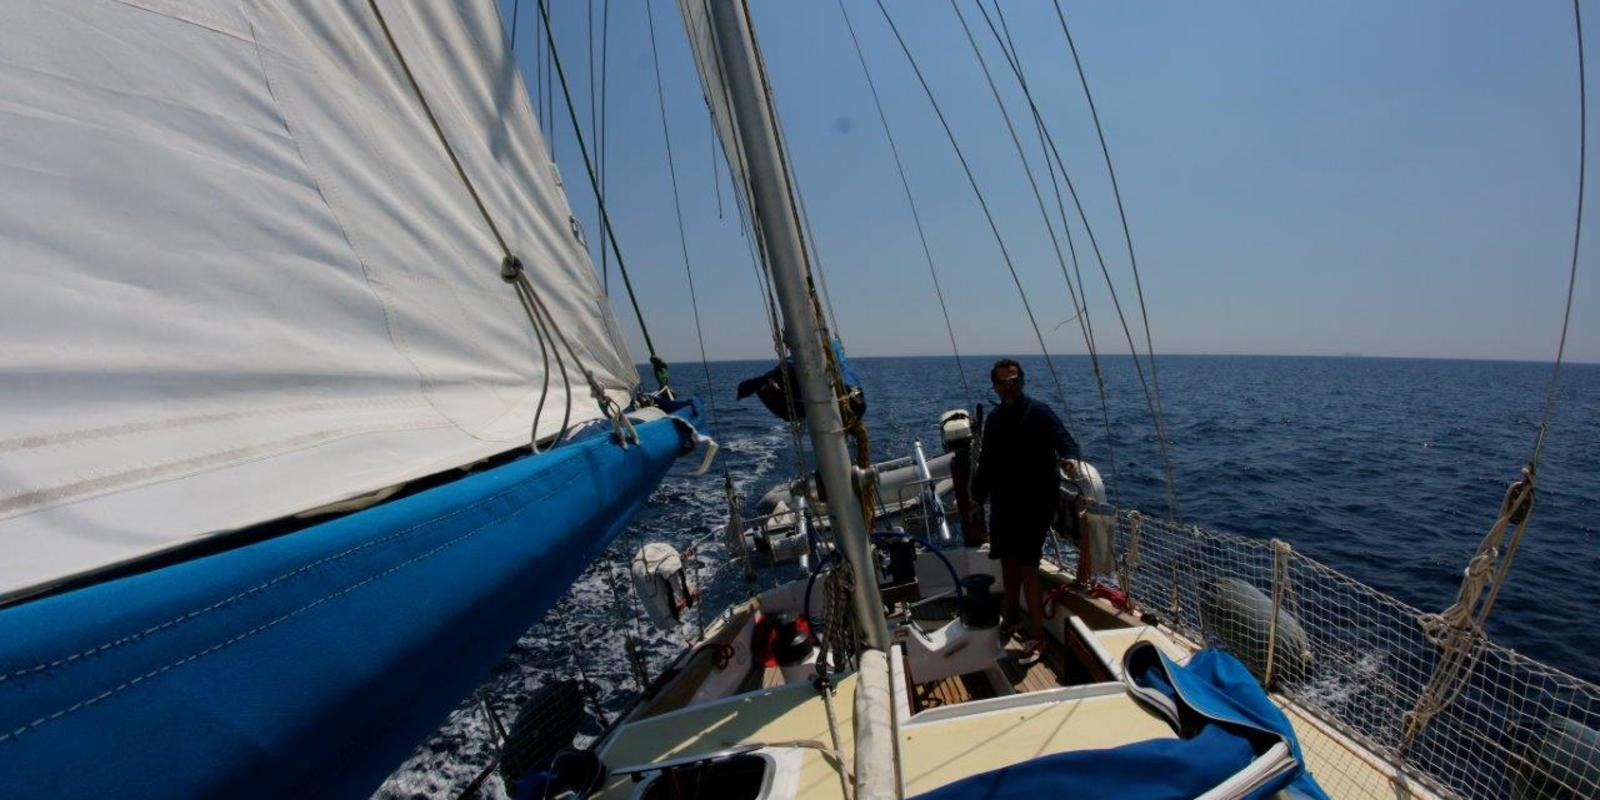 Sailing among the pearls of the Tuscan Archipelago Park